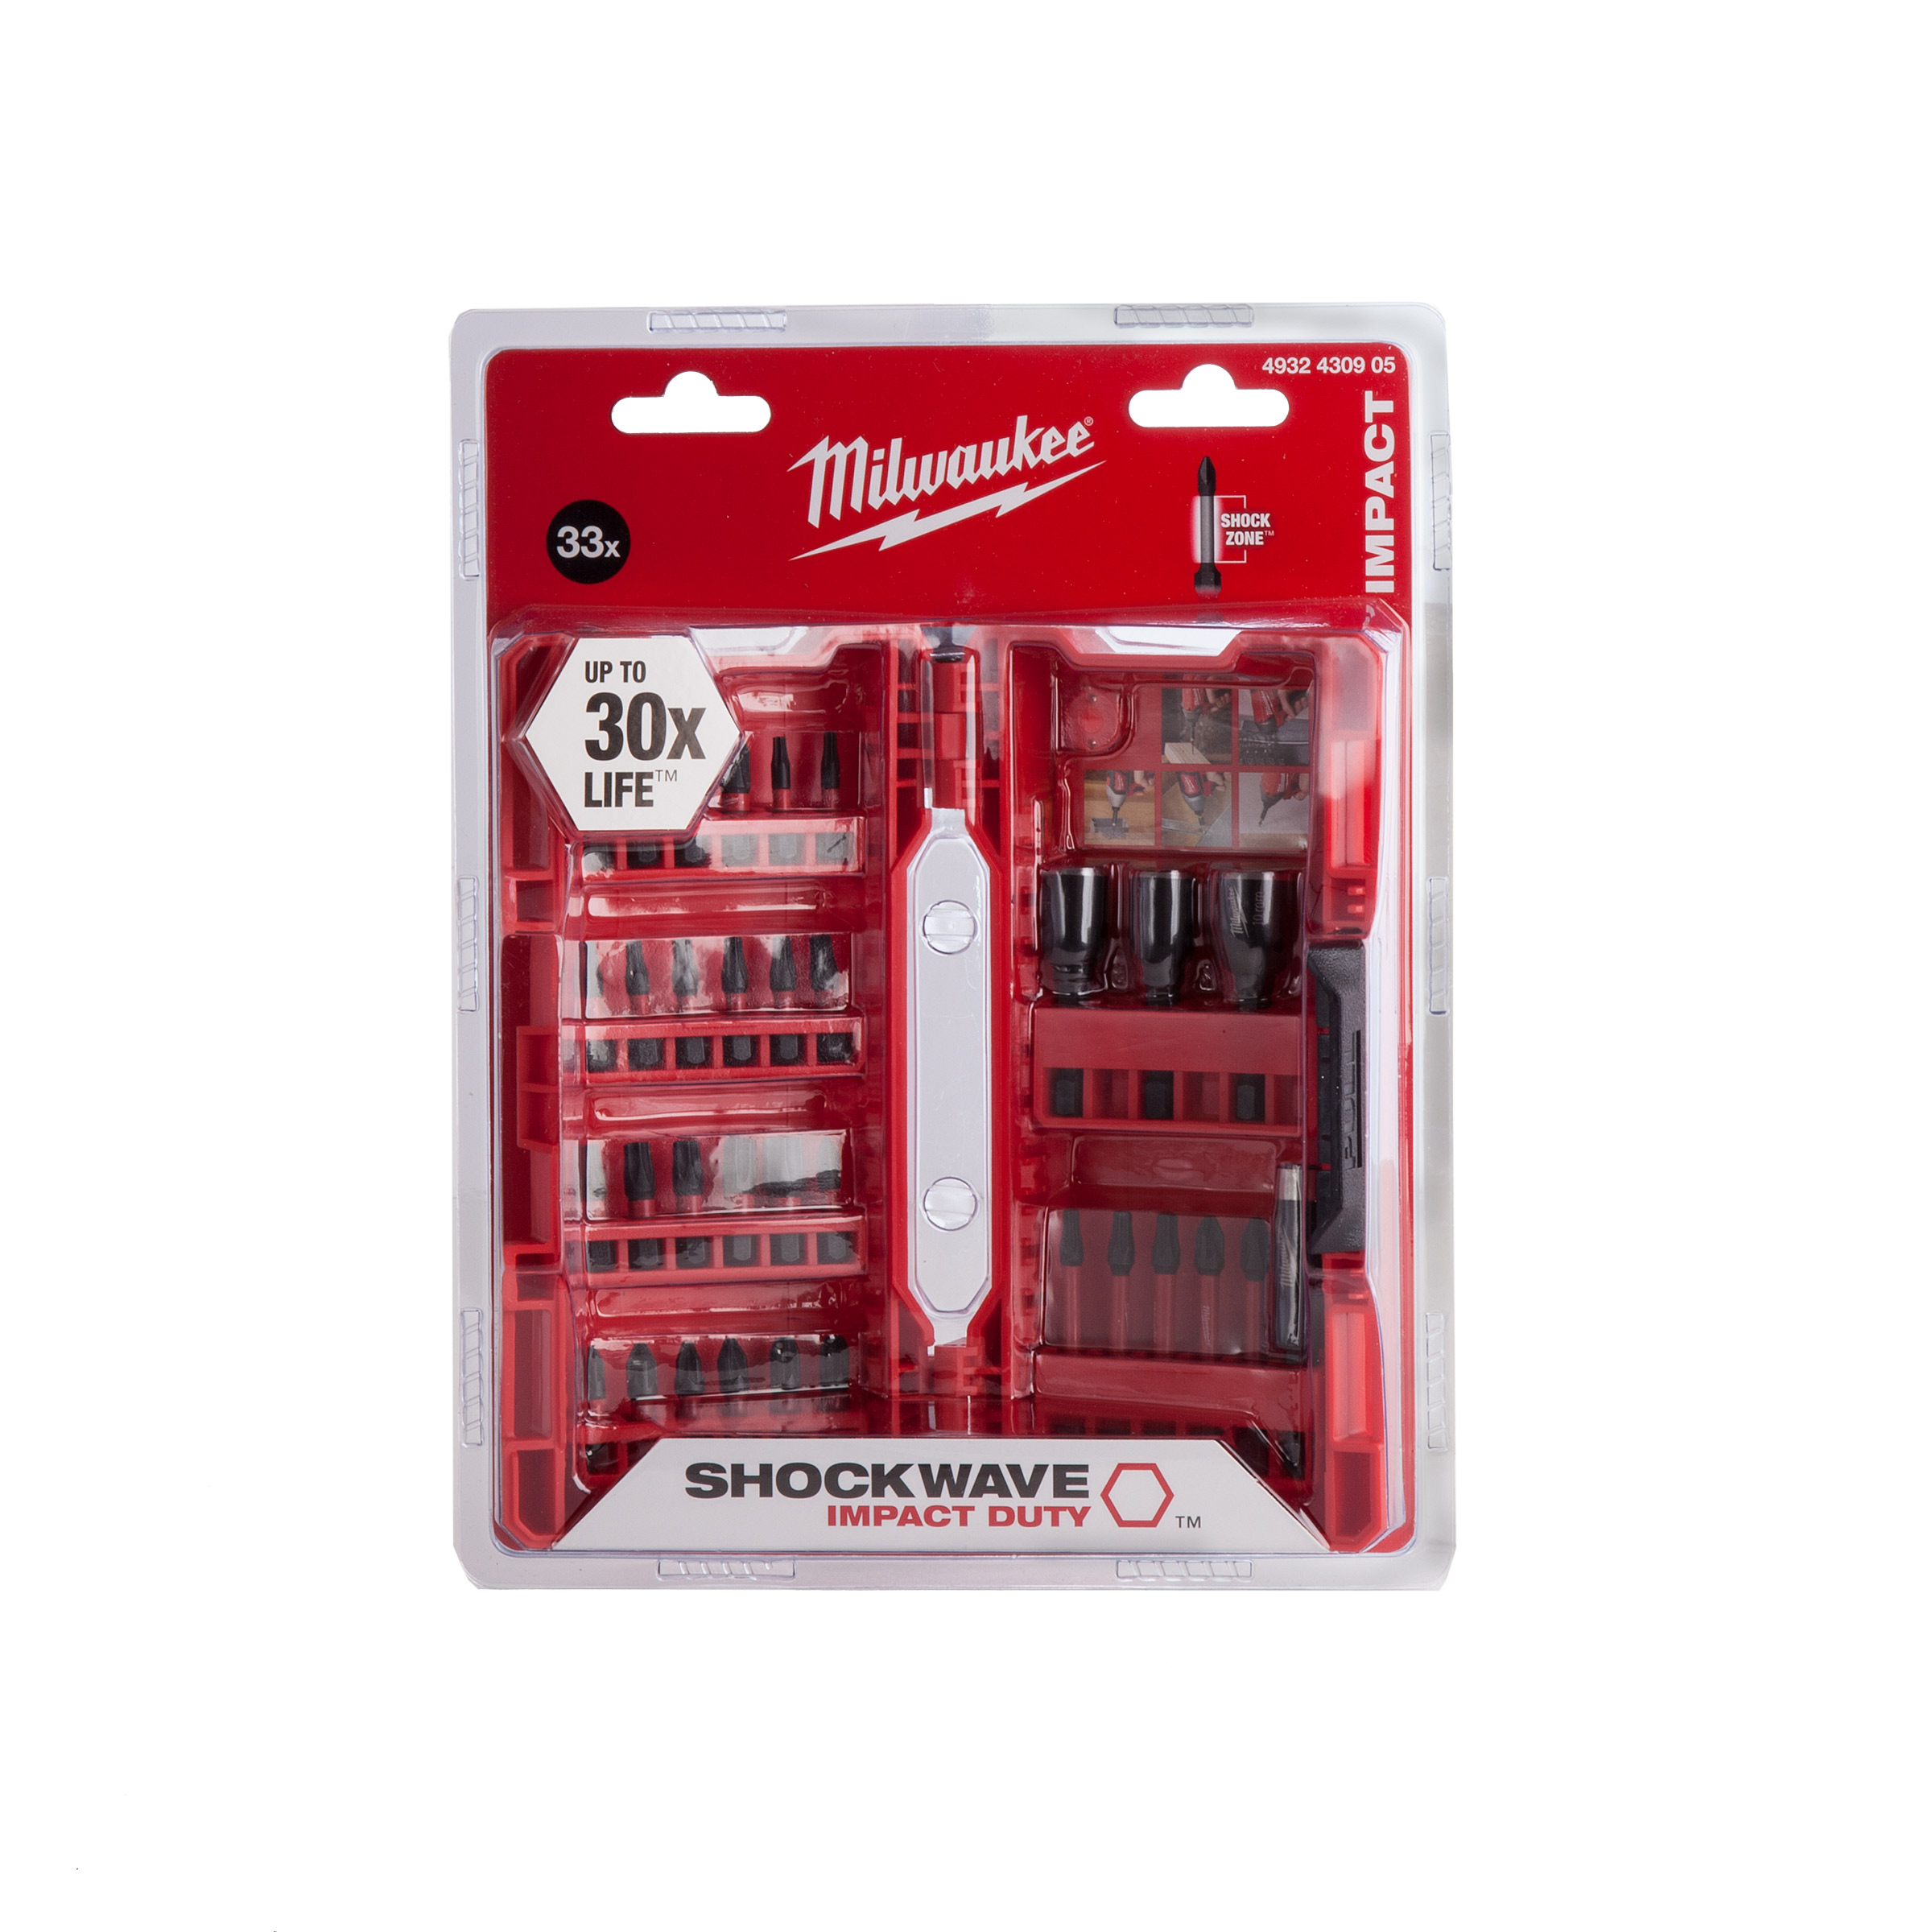 MILWAUKEE SHOCKWAVE SCREWDRIVER BIT SET - 33PC - 4932430905